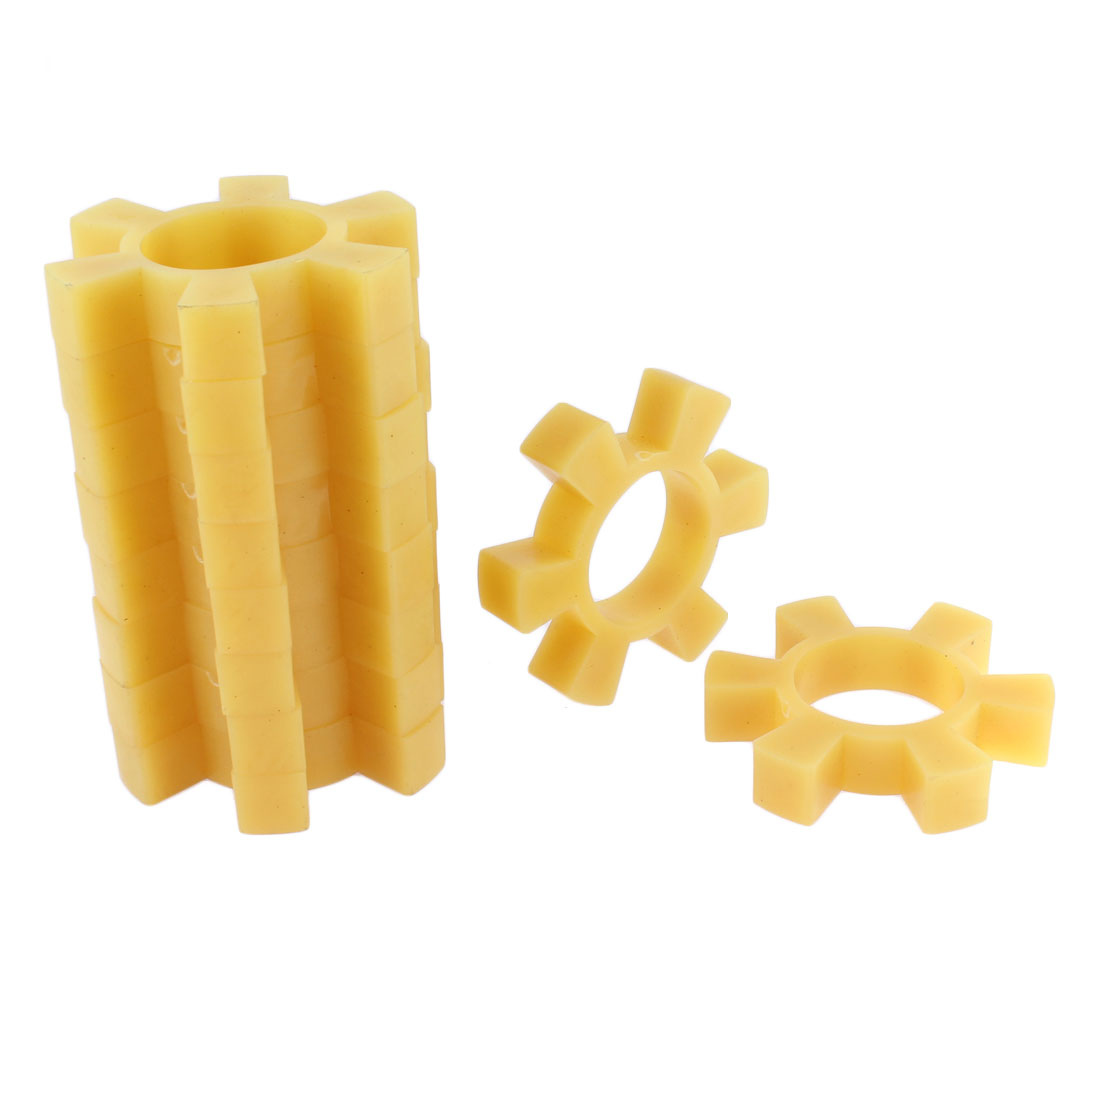 10pcs Plastic Coupling Shaft Center Spider Coupler Damper Yellow 22mm Thickness